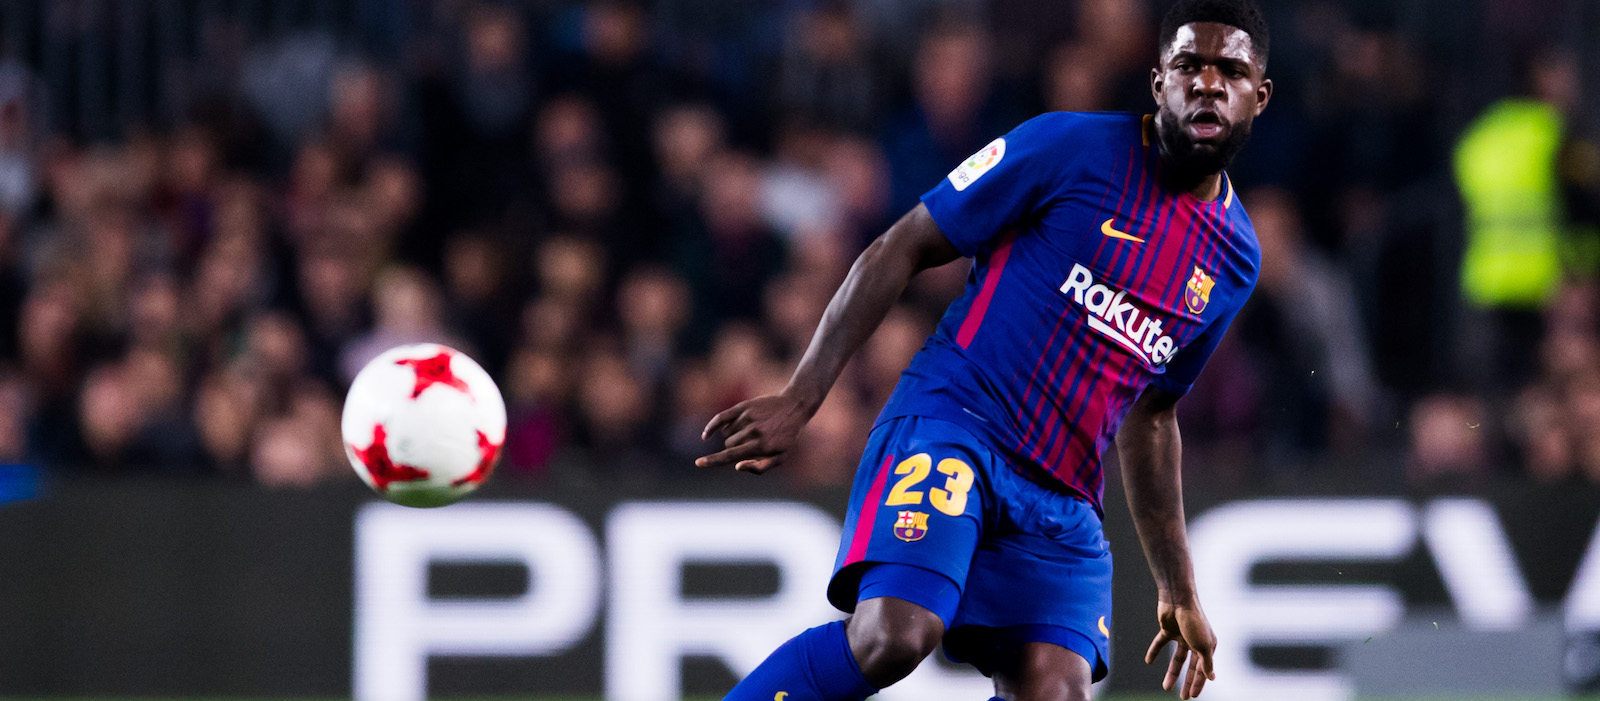 Barcelona's Lionel Messi furious with Samuel Umtiti due to Manchester United interest: report